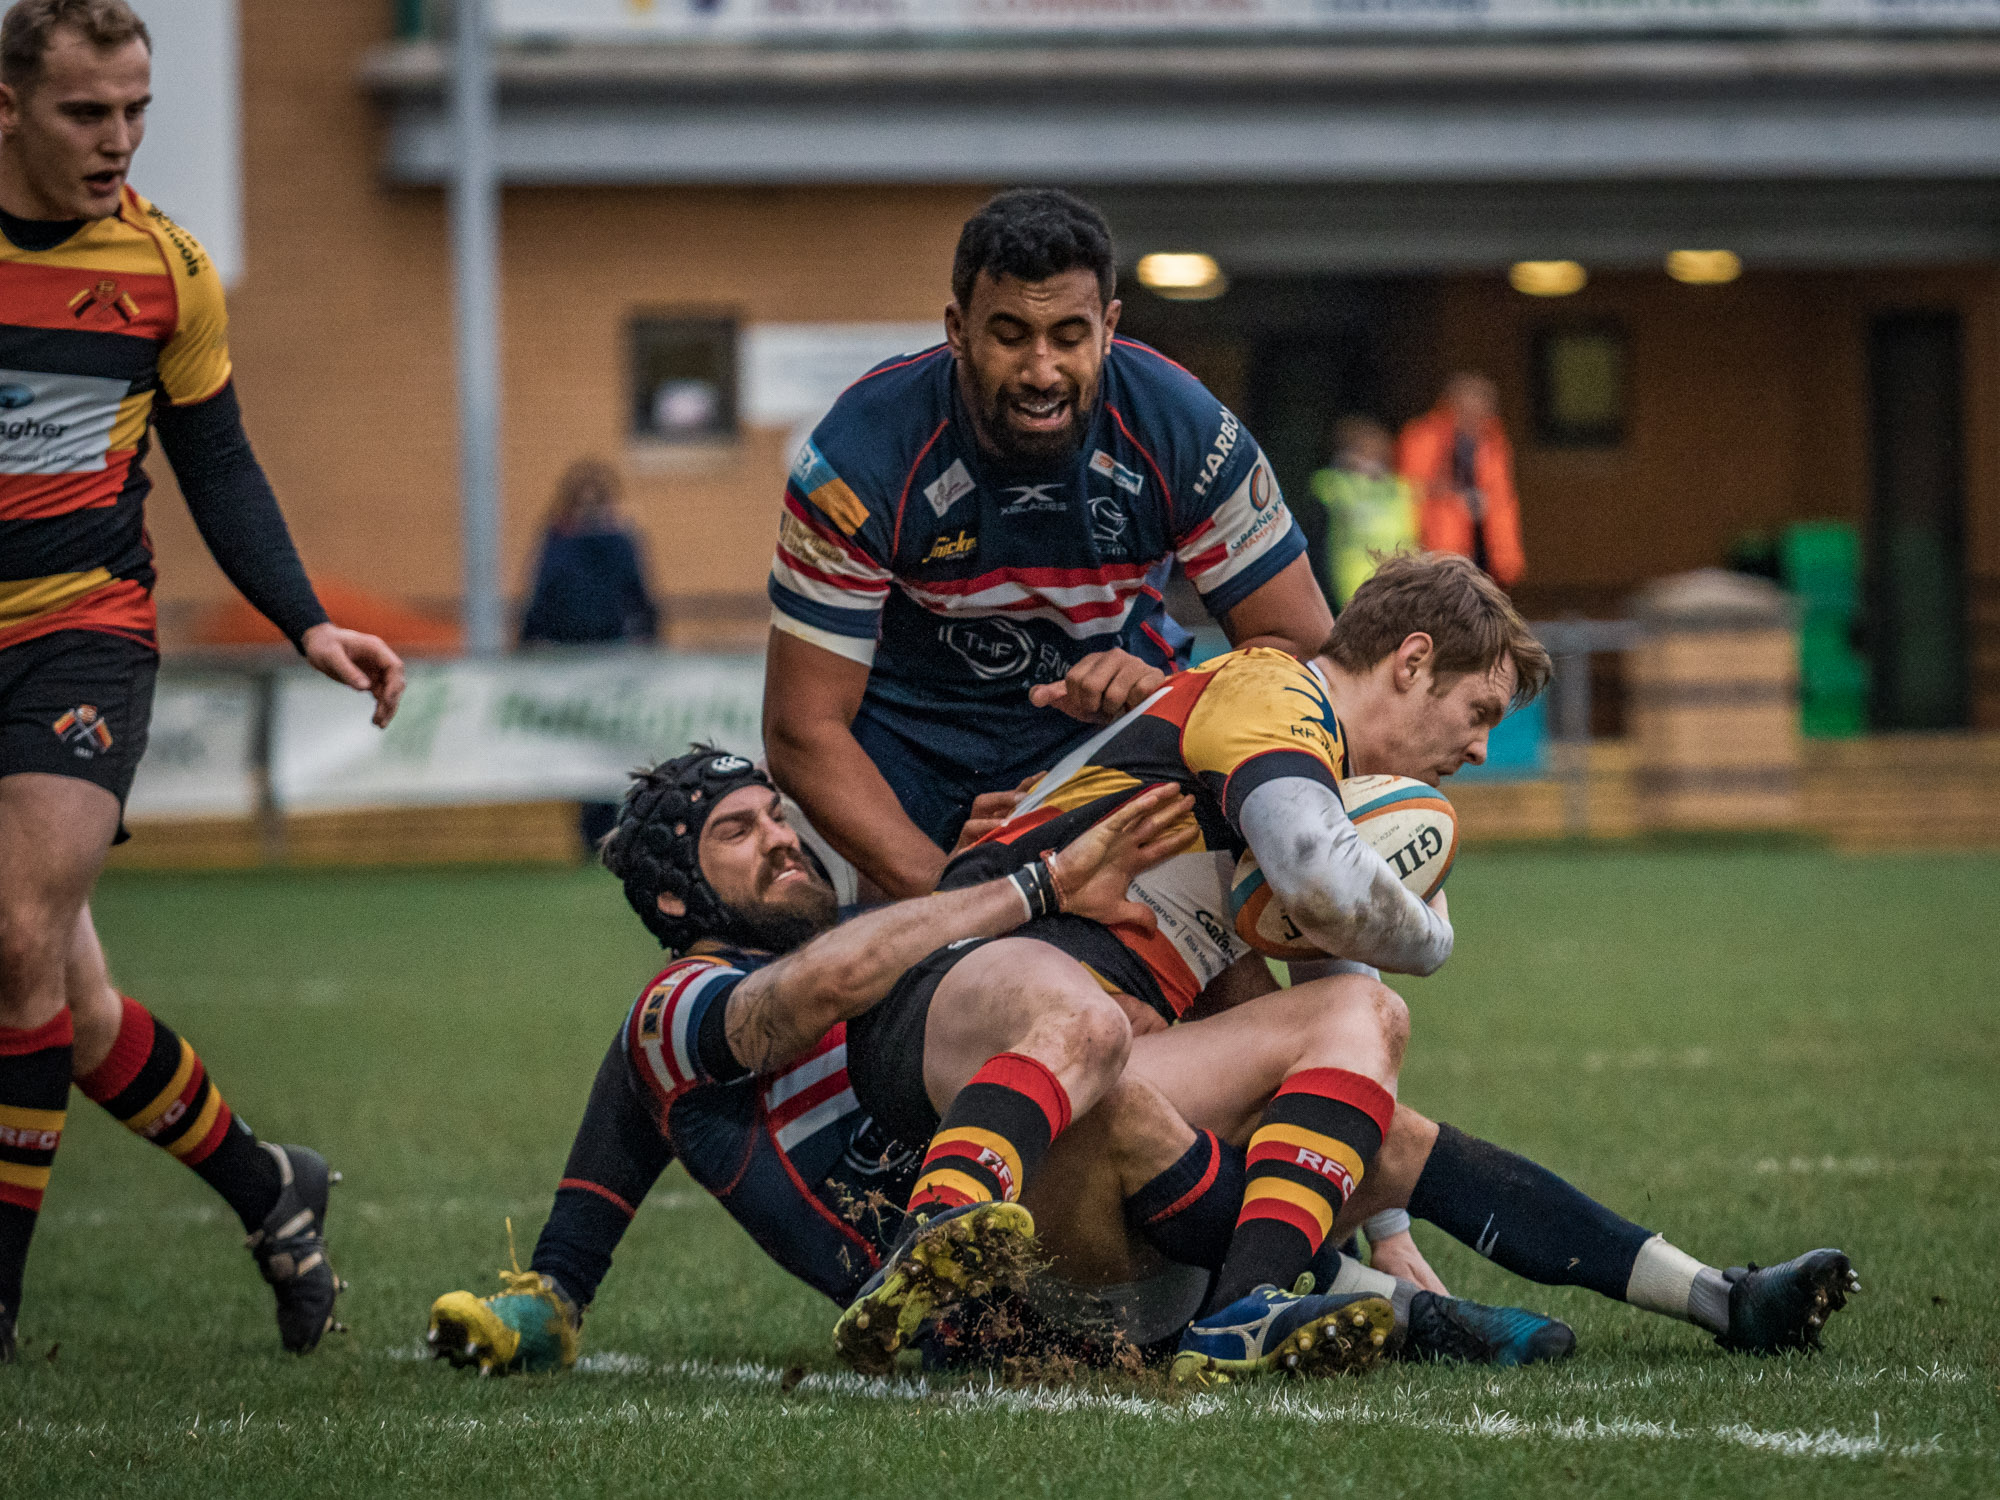 Joint effort as Doncaster's Dougie Flockhart and Josh Tyrell effect a tackle